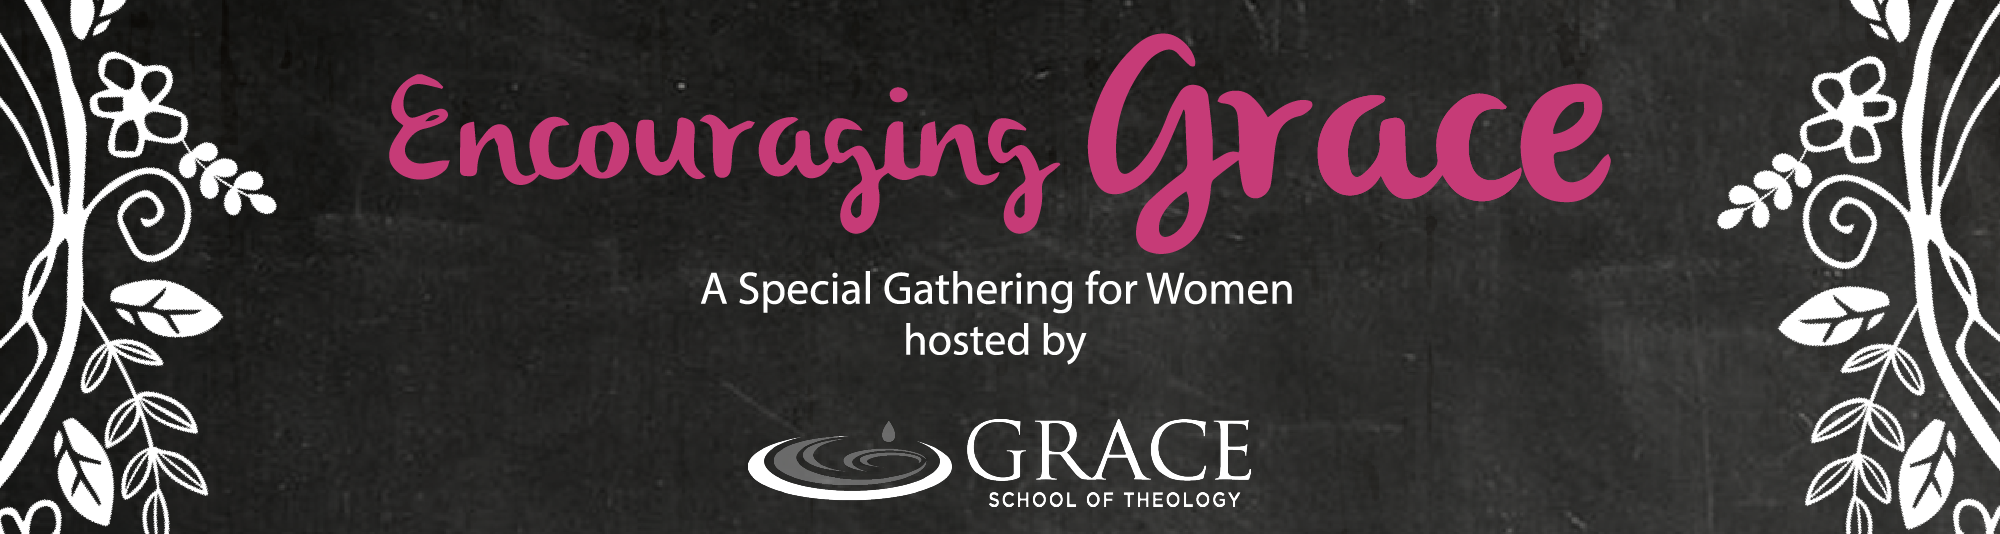 Encouraging Grace - A Special Gathering for Women